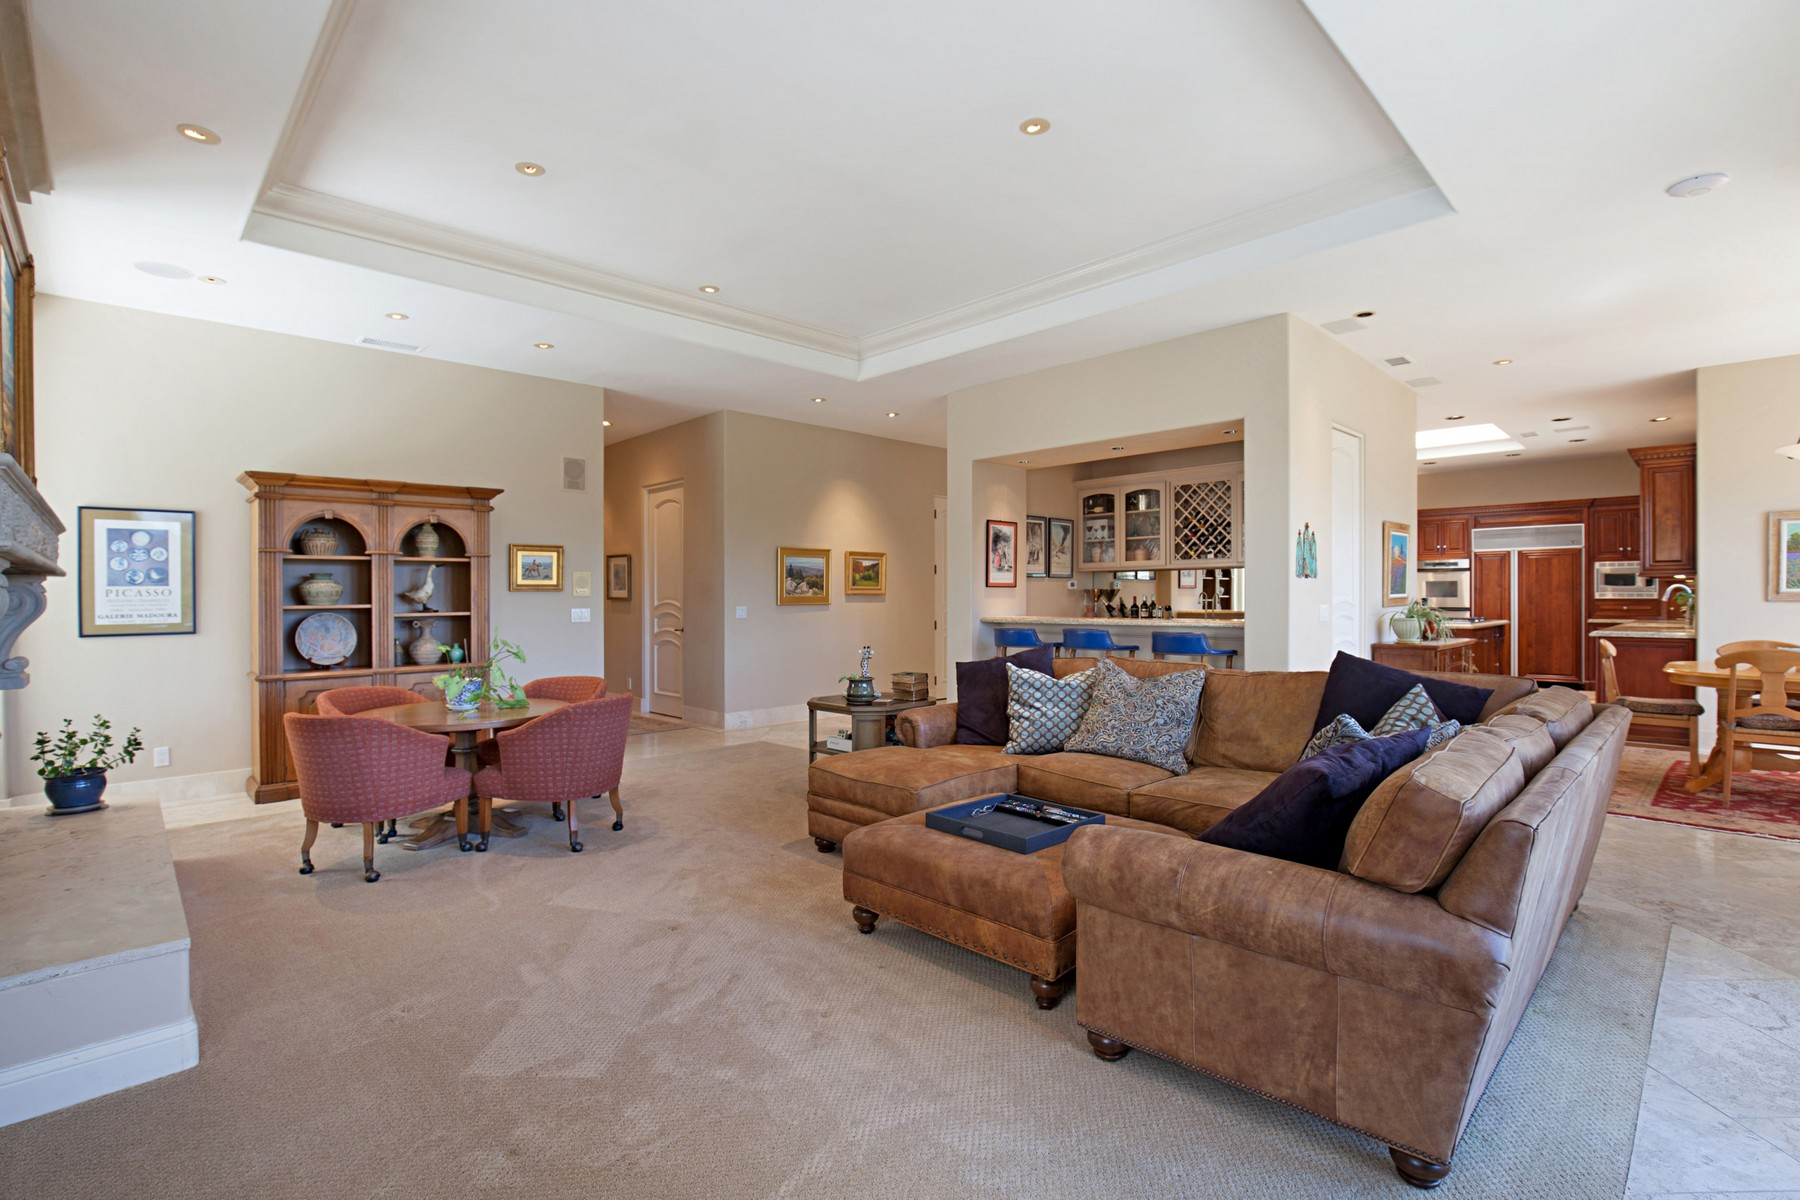 Additional photo for property listing at 7566 St. Andrews  Rancho Santa Fe, California 92067 United States